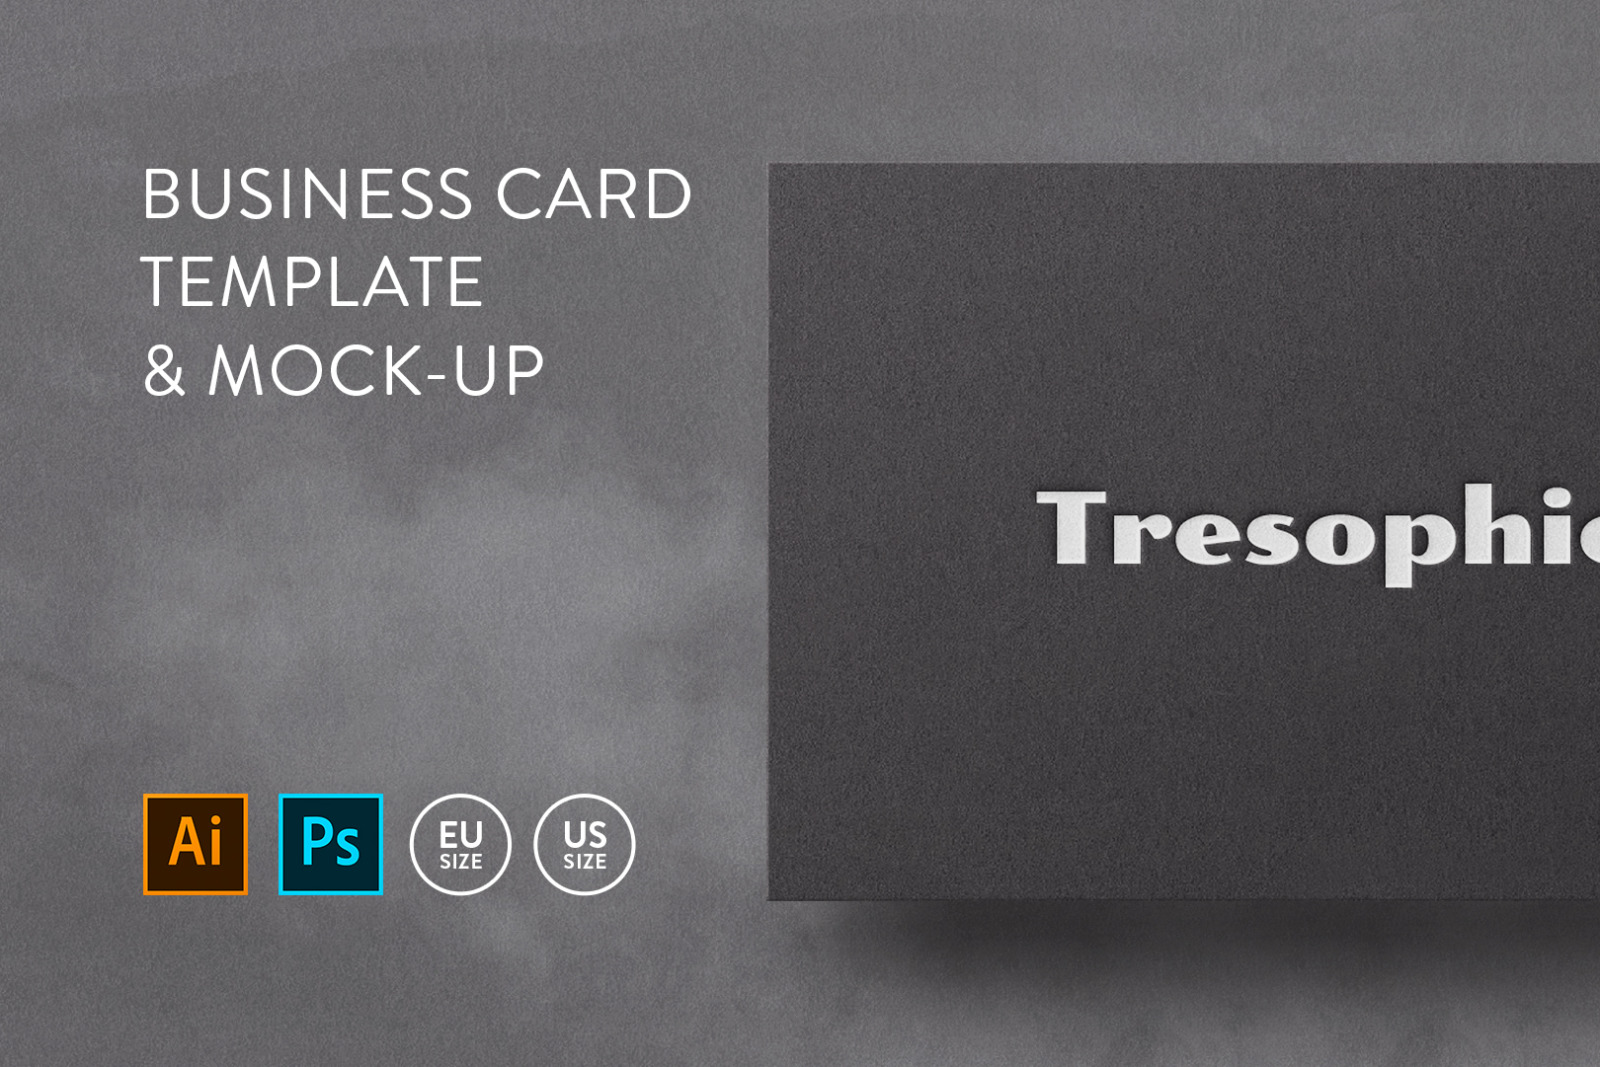 Business card Template & Mock-up #36